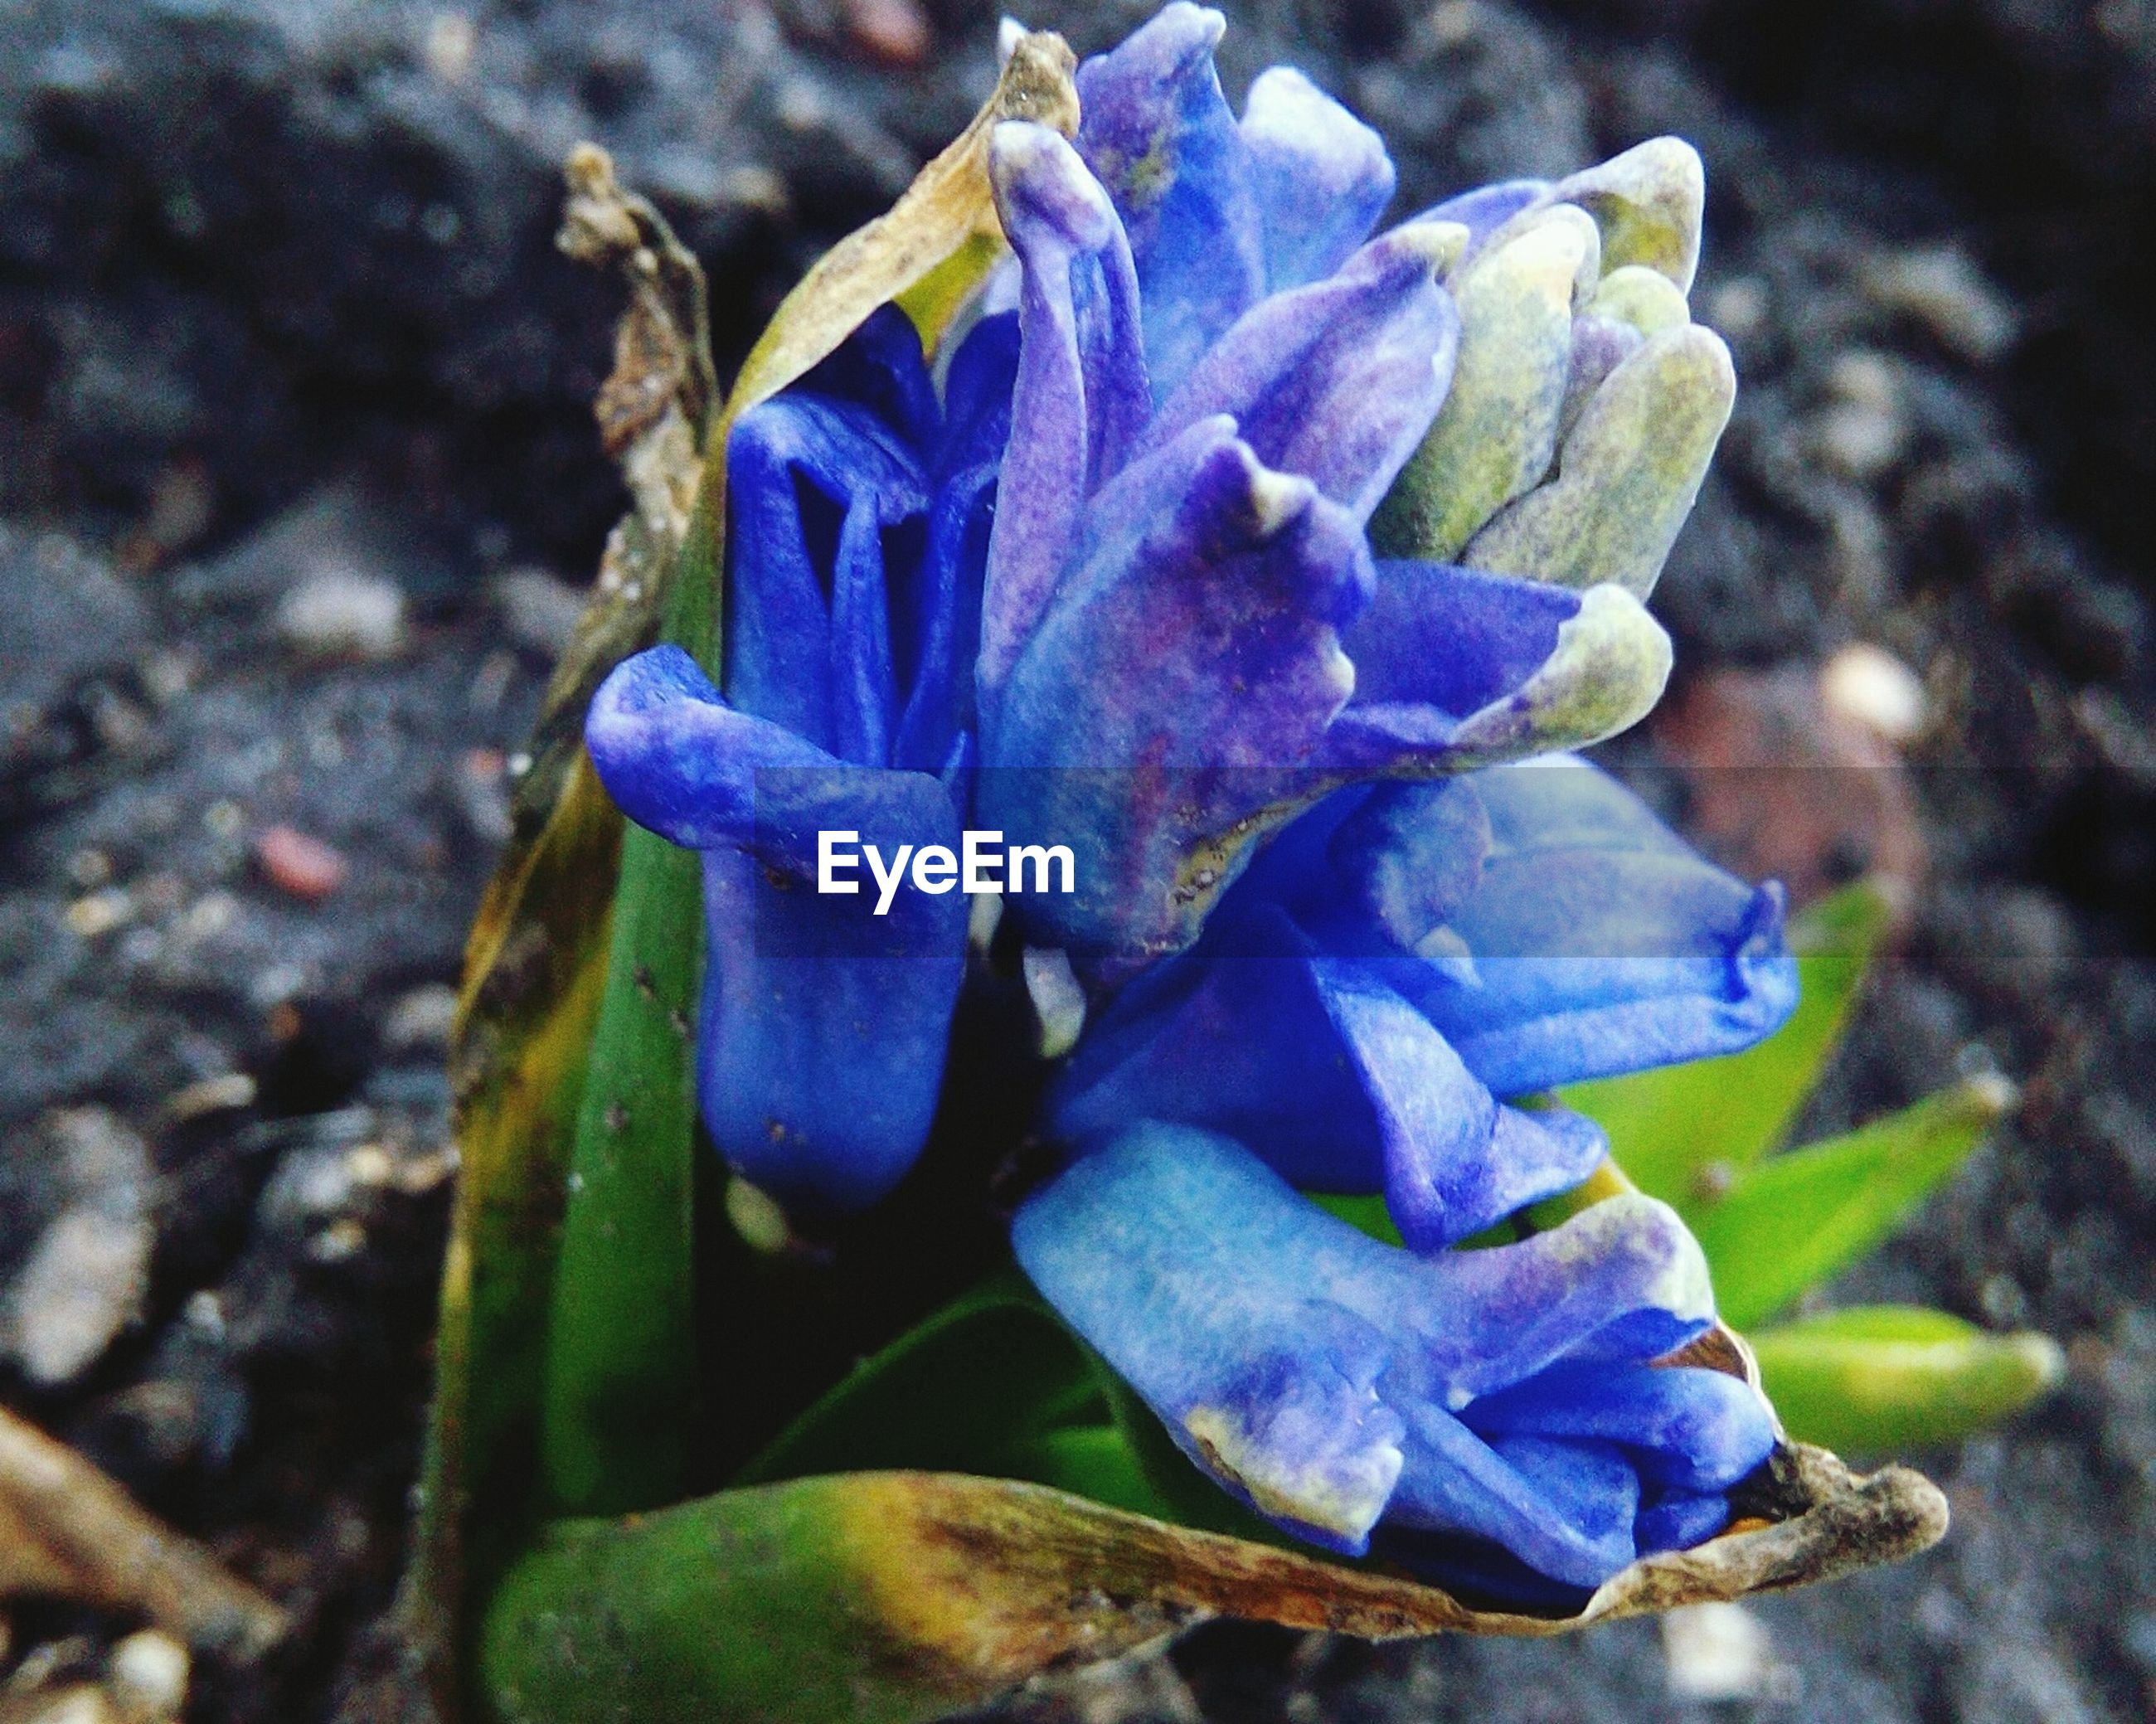 flower, flowering plant, plant, beauty in nature, petal, fragility, purple, close-up, inflorescence, vulnerability, growth, flower head, freshness, nature, blue, no people, day, focus on foreground, selective focus, iris, outdoors